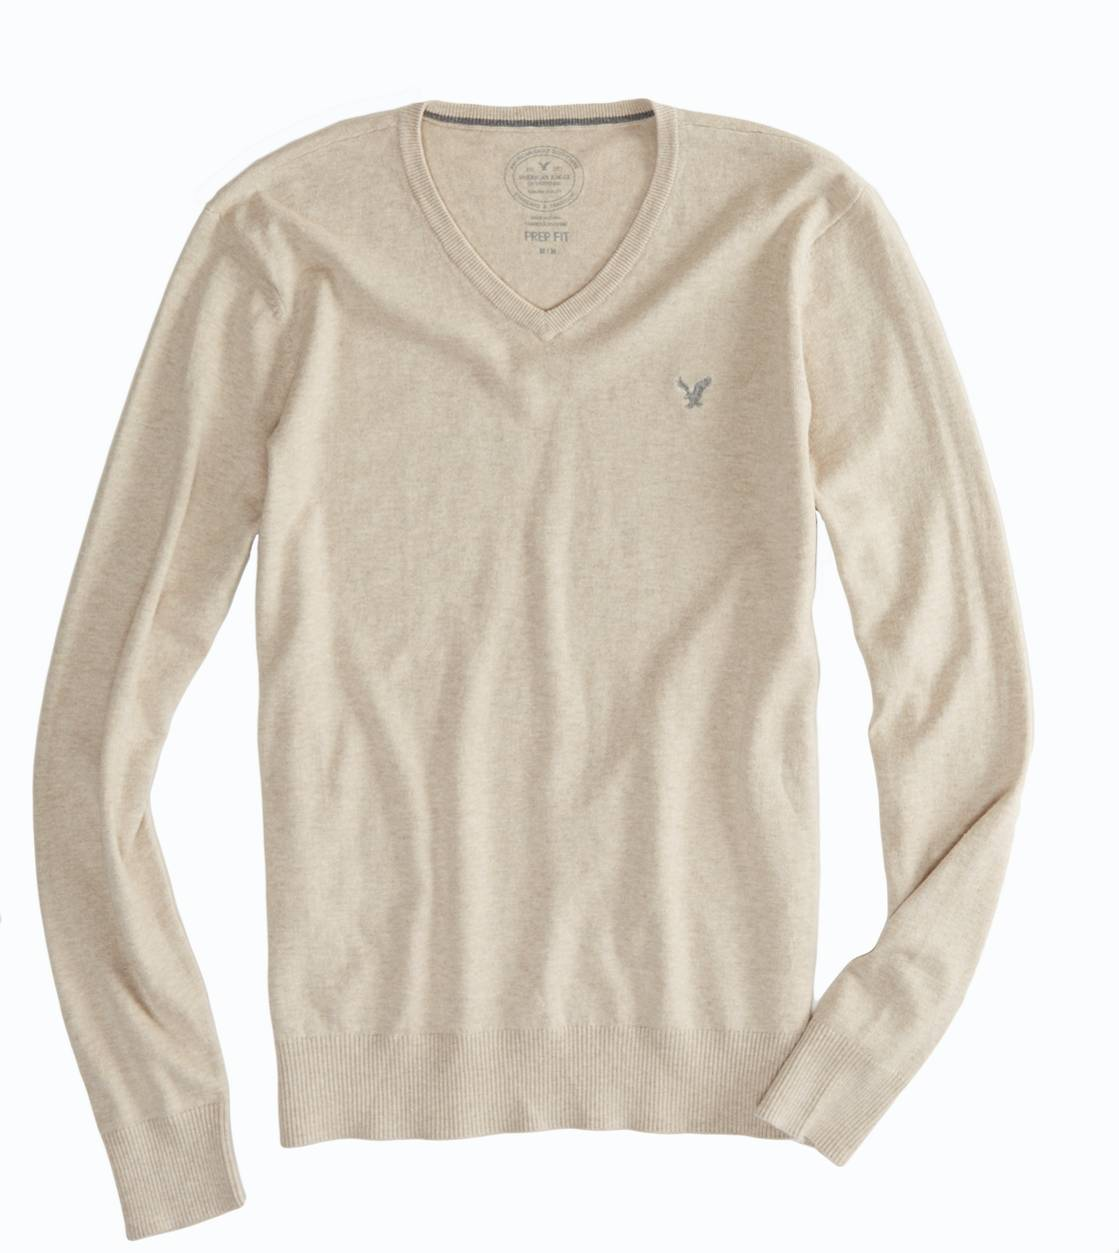 Oatmeal Heather AEO Factory V-Neck Sweater